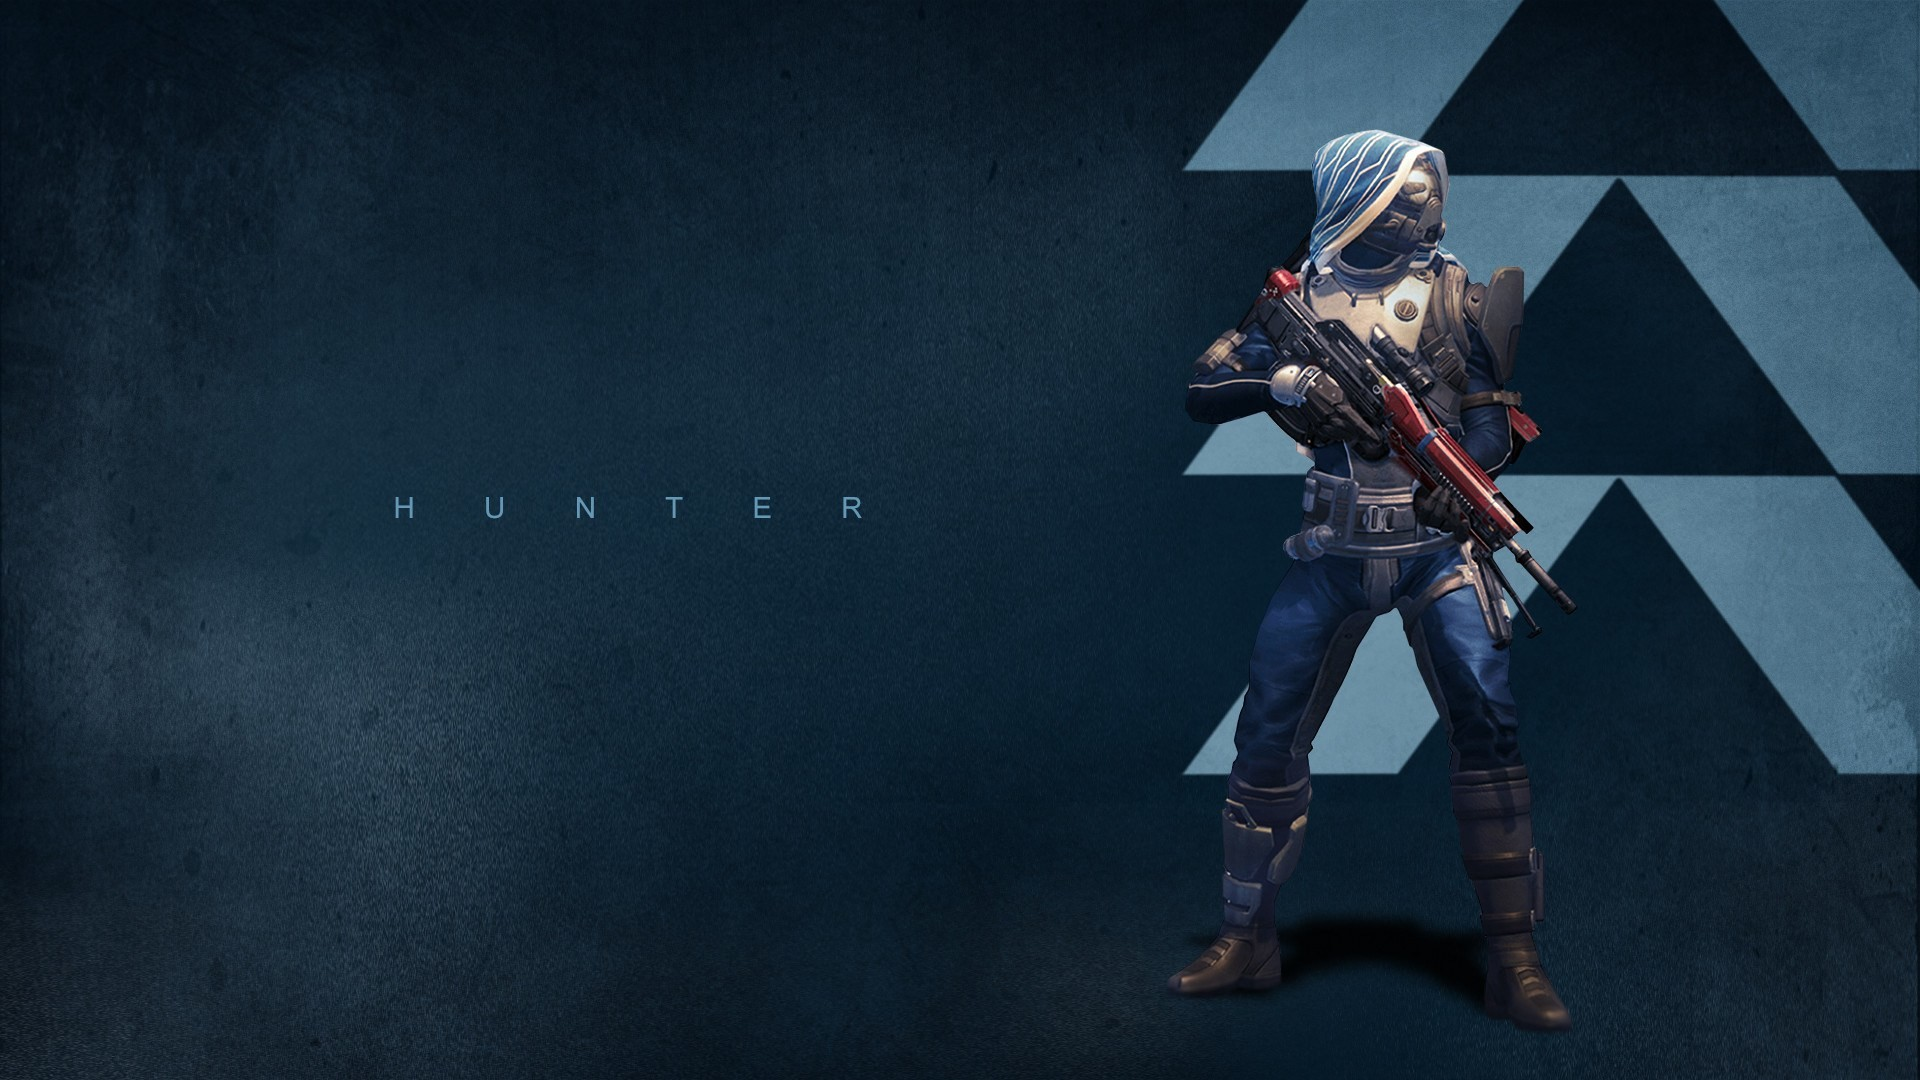 Also you can check out a ton more Destiny wallpapers here.